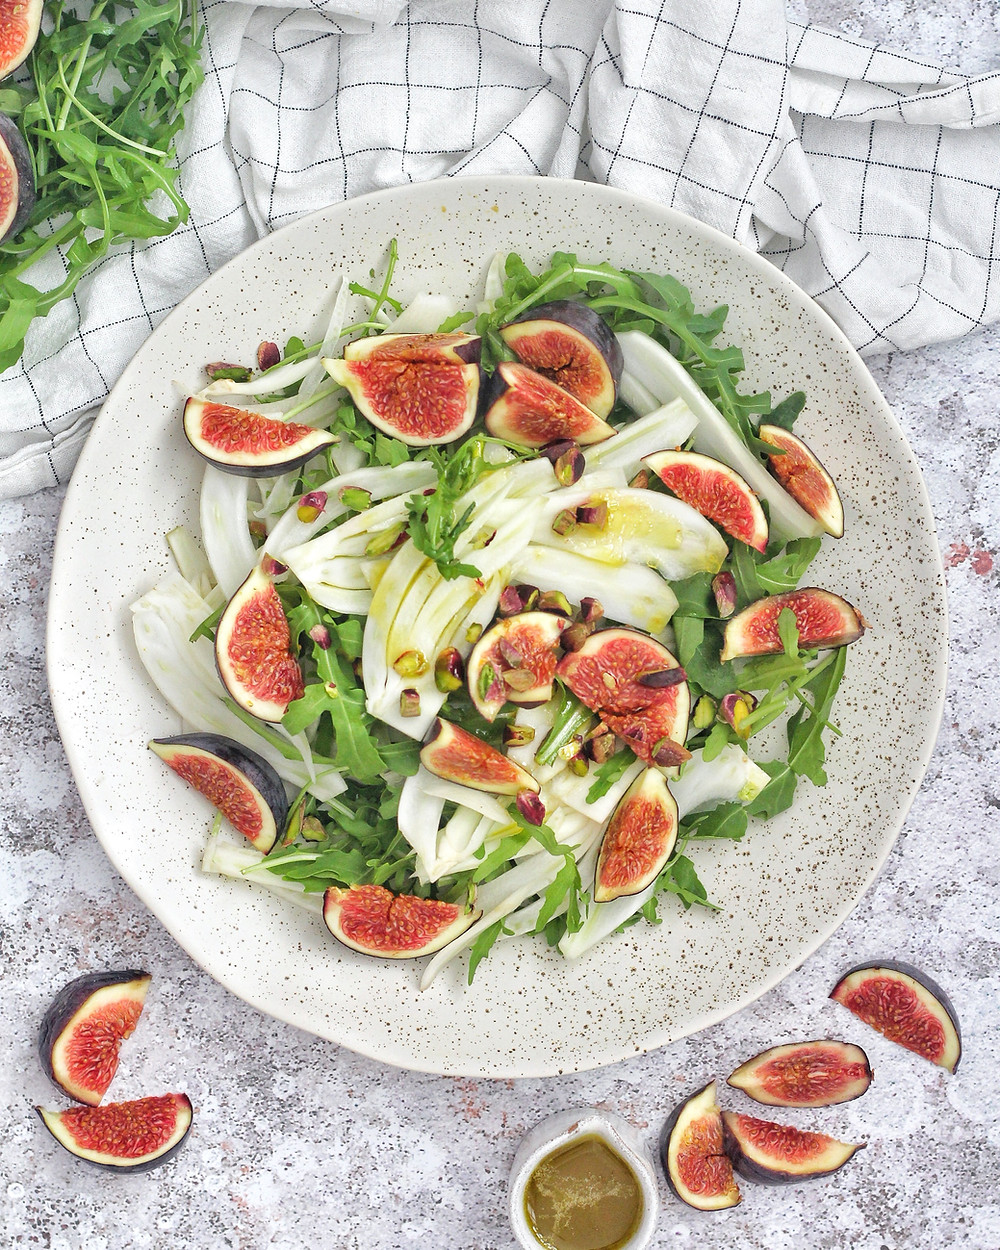 Easy salad recipe using fresh figs, fennel, and pistachios